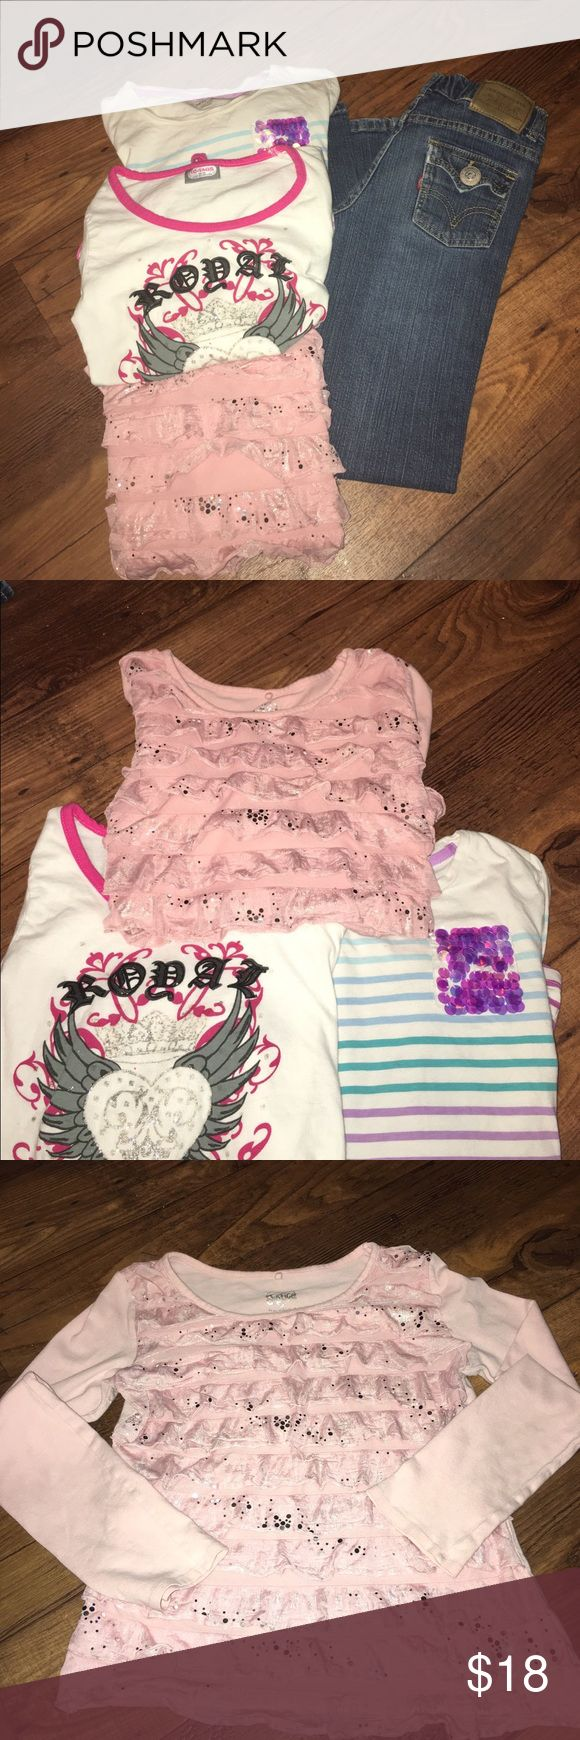 """FBundle- Girls 10/12 Justice Levi's - final price 3 long sleeve tops size 10/12, and one pair of Levi's size 10. Pink ruffle/sequined JUSTICE, White shirt """"royal princess"""" with peplum ruffle, Levi's with adjustable waist all in great condition. The white striped shirt has a spot on the left arm should come out with some oxy clean. Bundle priced accordingly. -Same or next business day shipping.  🚫Smoke Free Home. various Shirts & Tops Tees - Long Sleeve"""